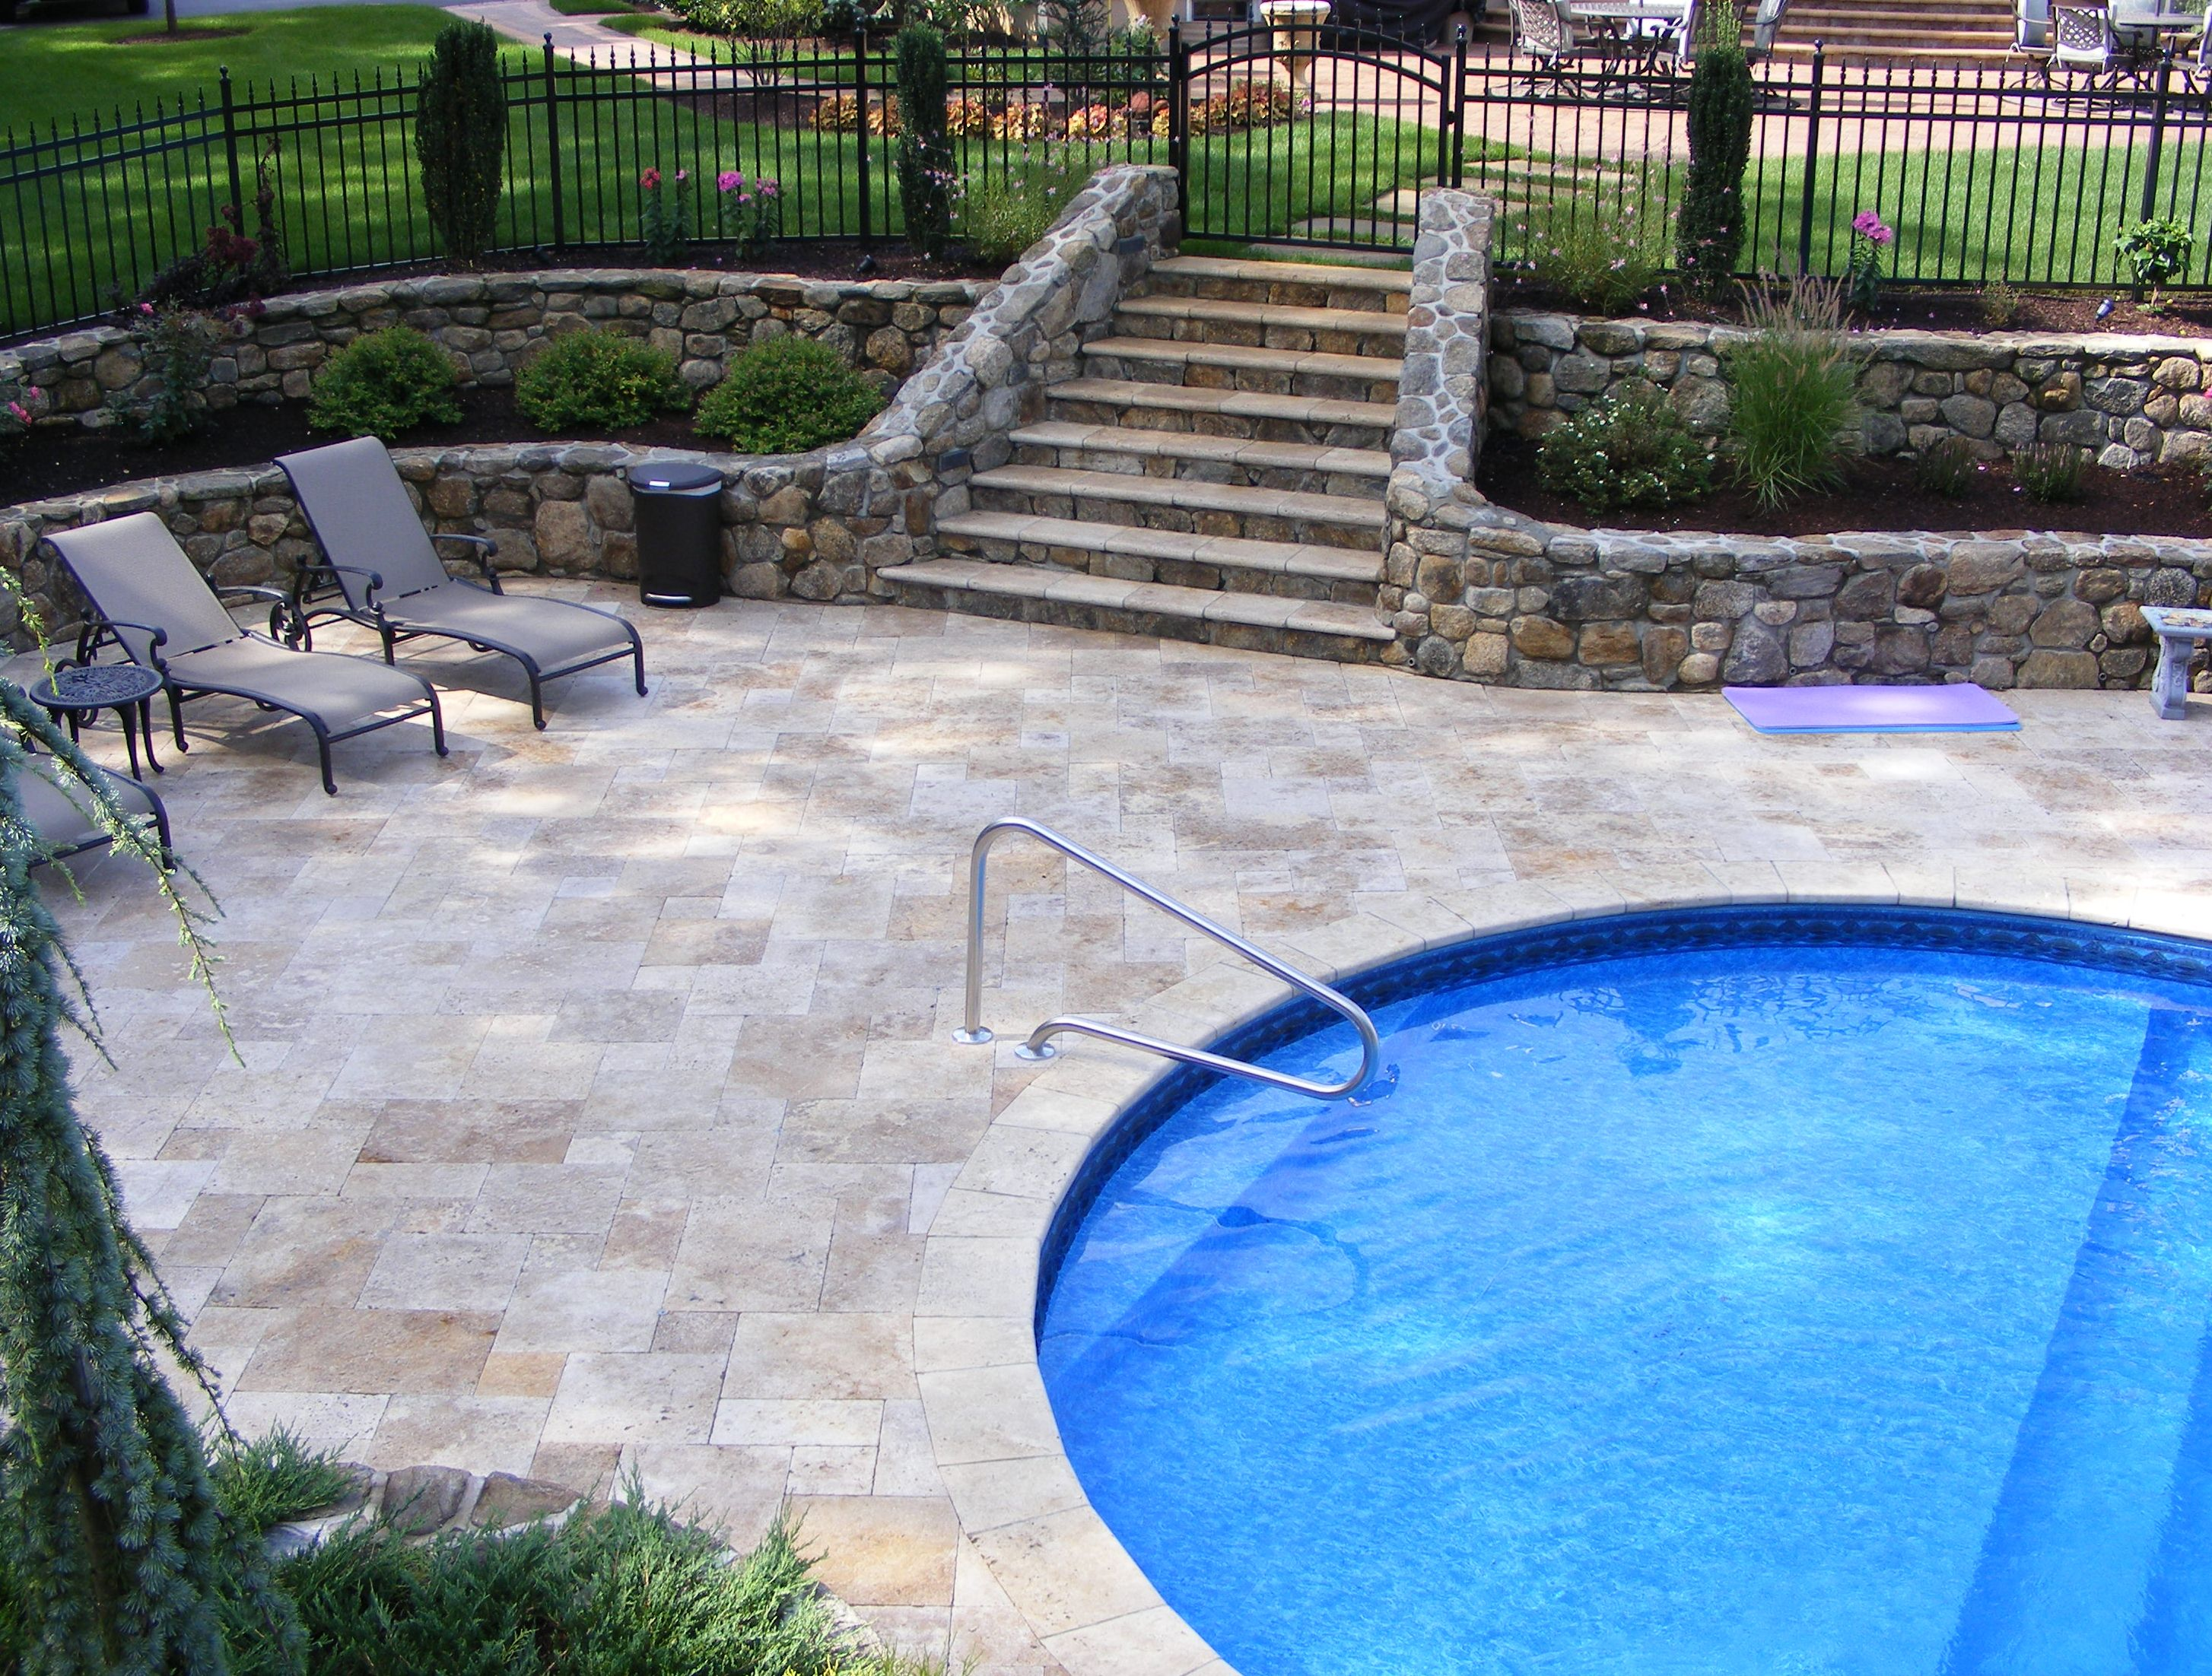 Falling in Love with Travertine Pavers Pool Deck - HomesFeed on Pool Deck Patio Ideas id=65428